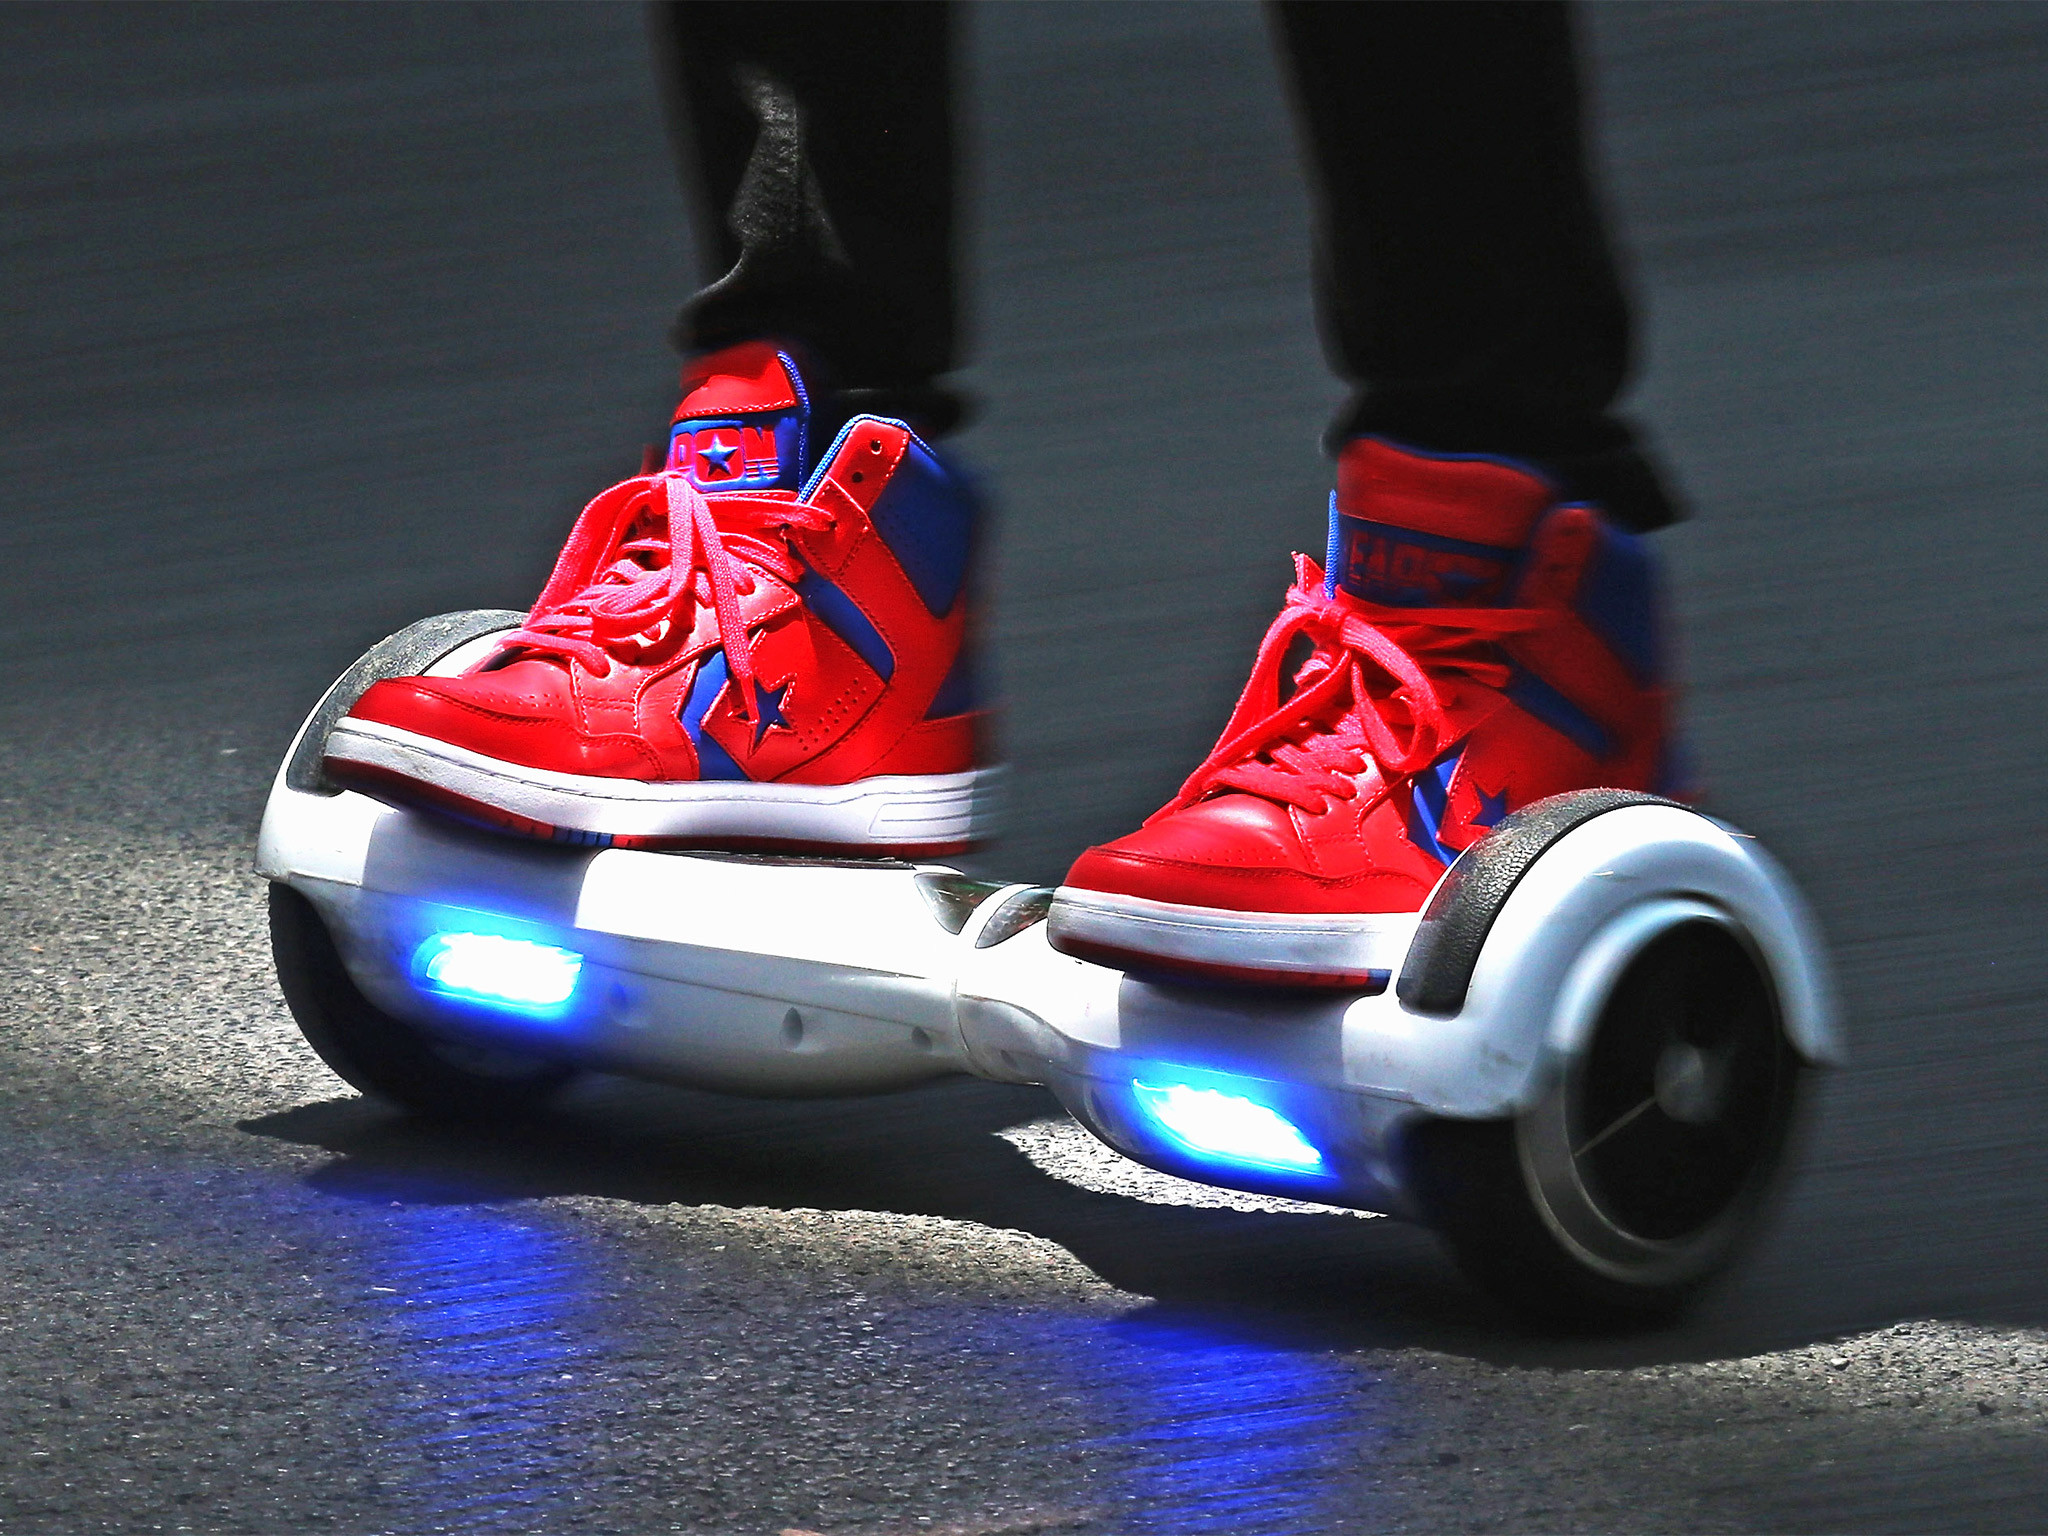 2048x1536 Amazon.com : Razor Hovertrax 2.0 Hoverboard Self-Balancing Smart .